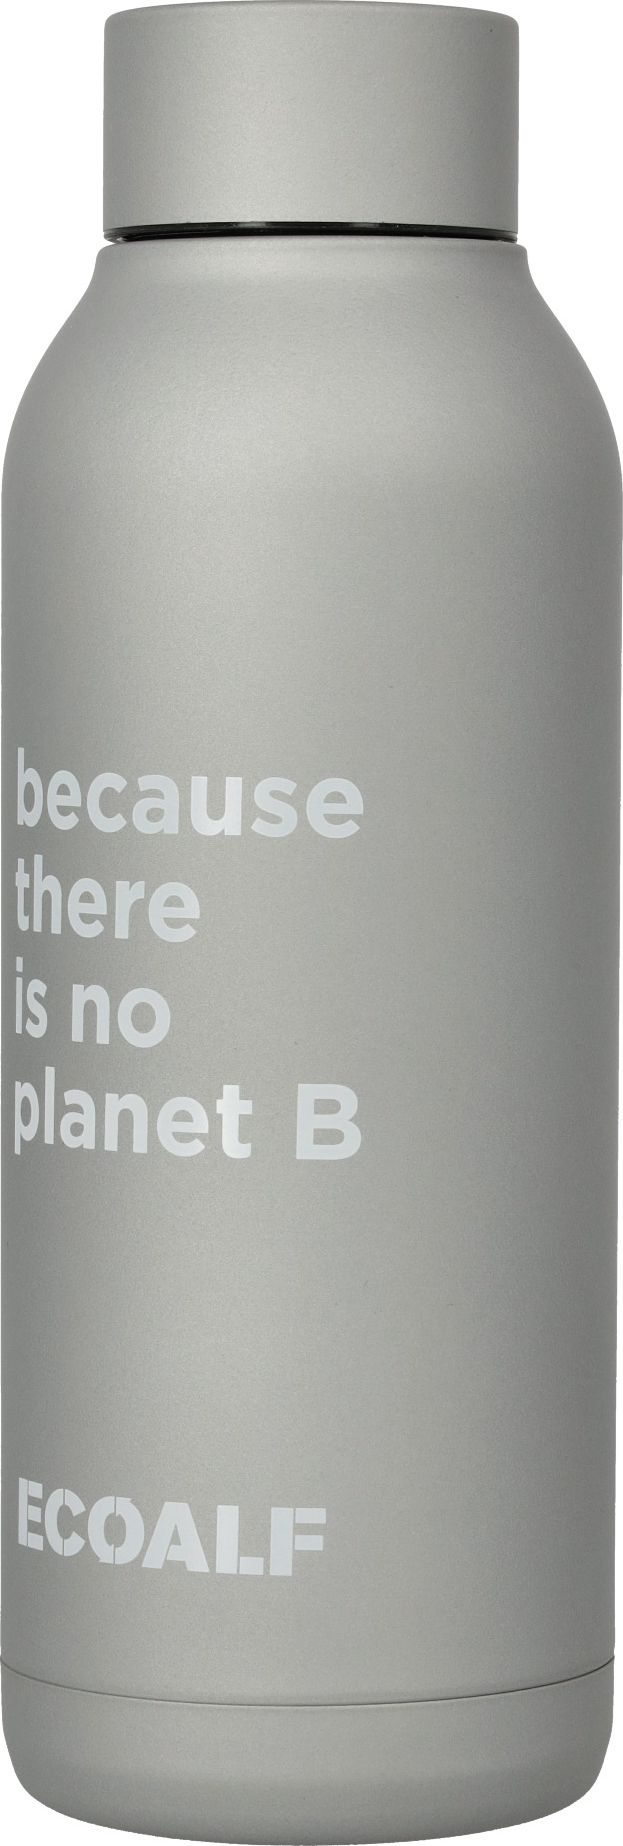 ECOALF Bronson Stainless Steel Bottle Silver One size